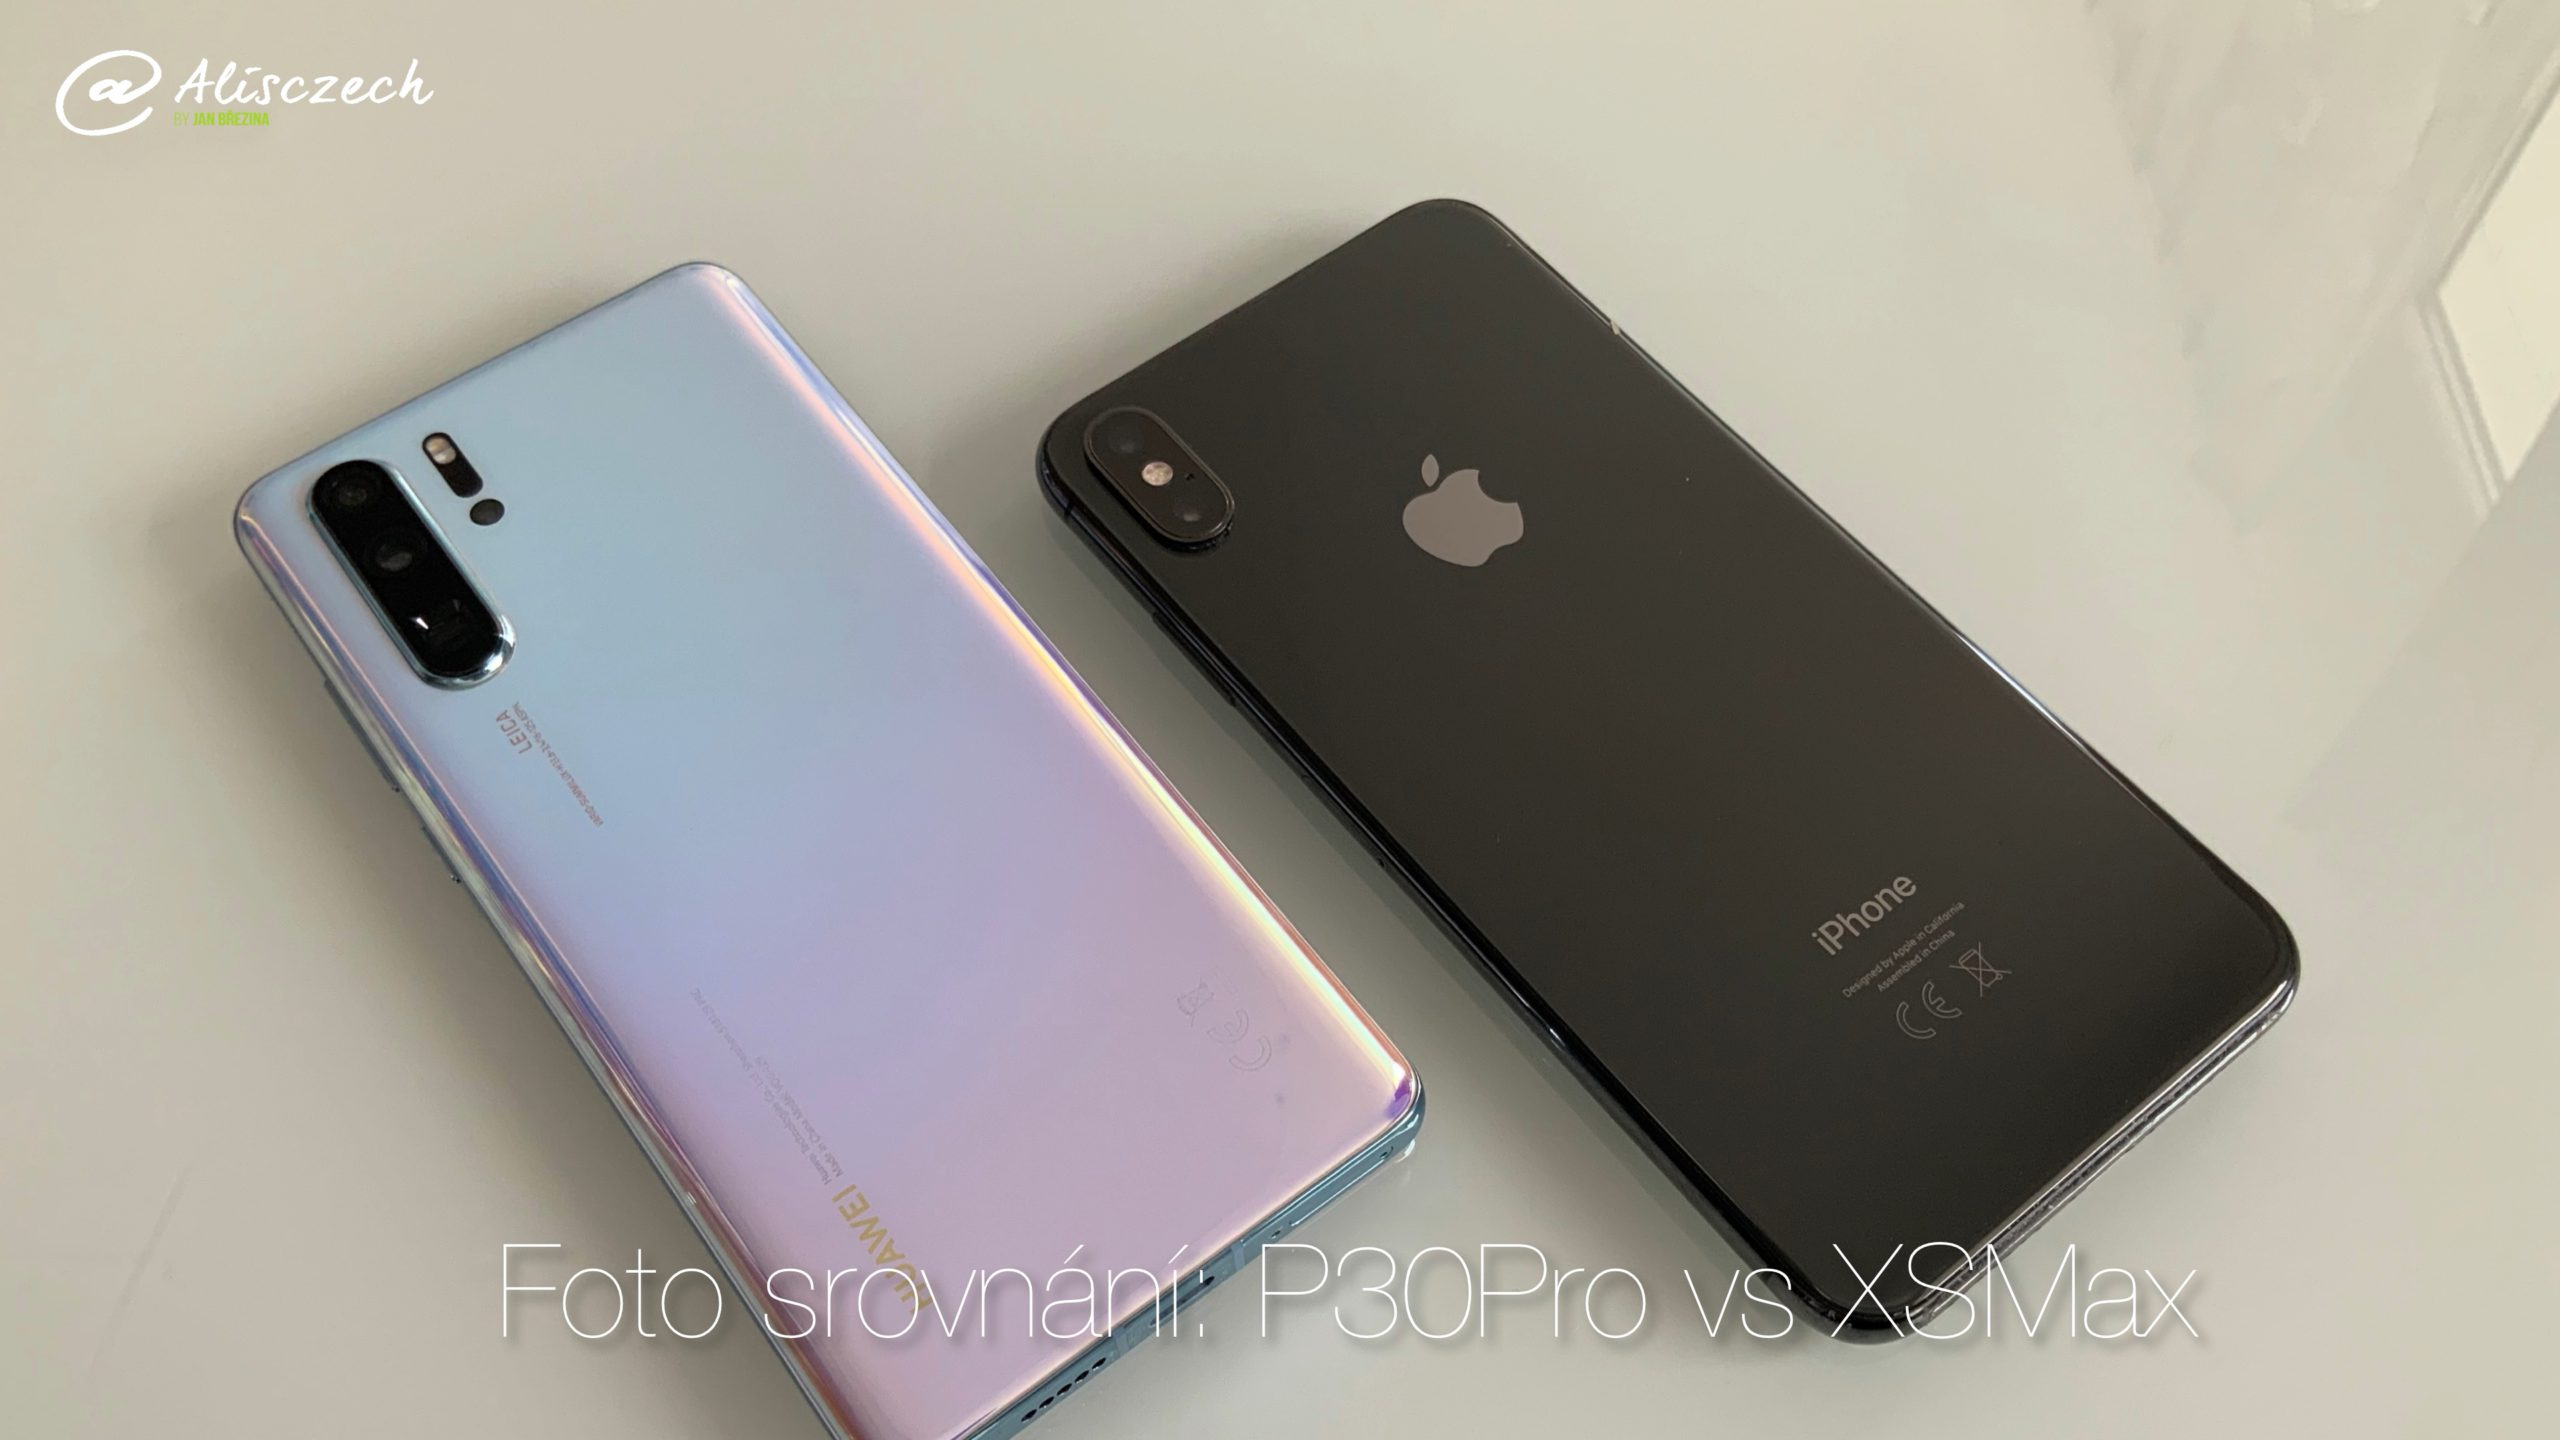 P30 Pro vs iPhone XS Max